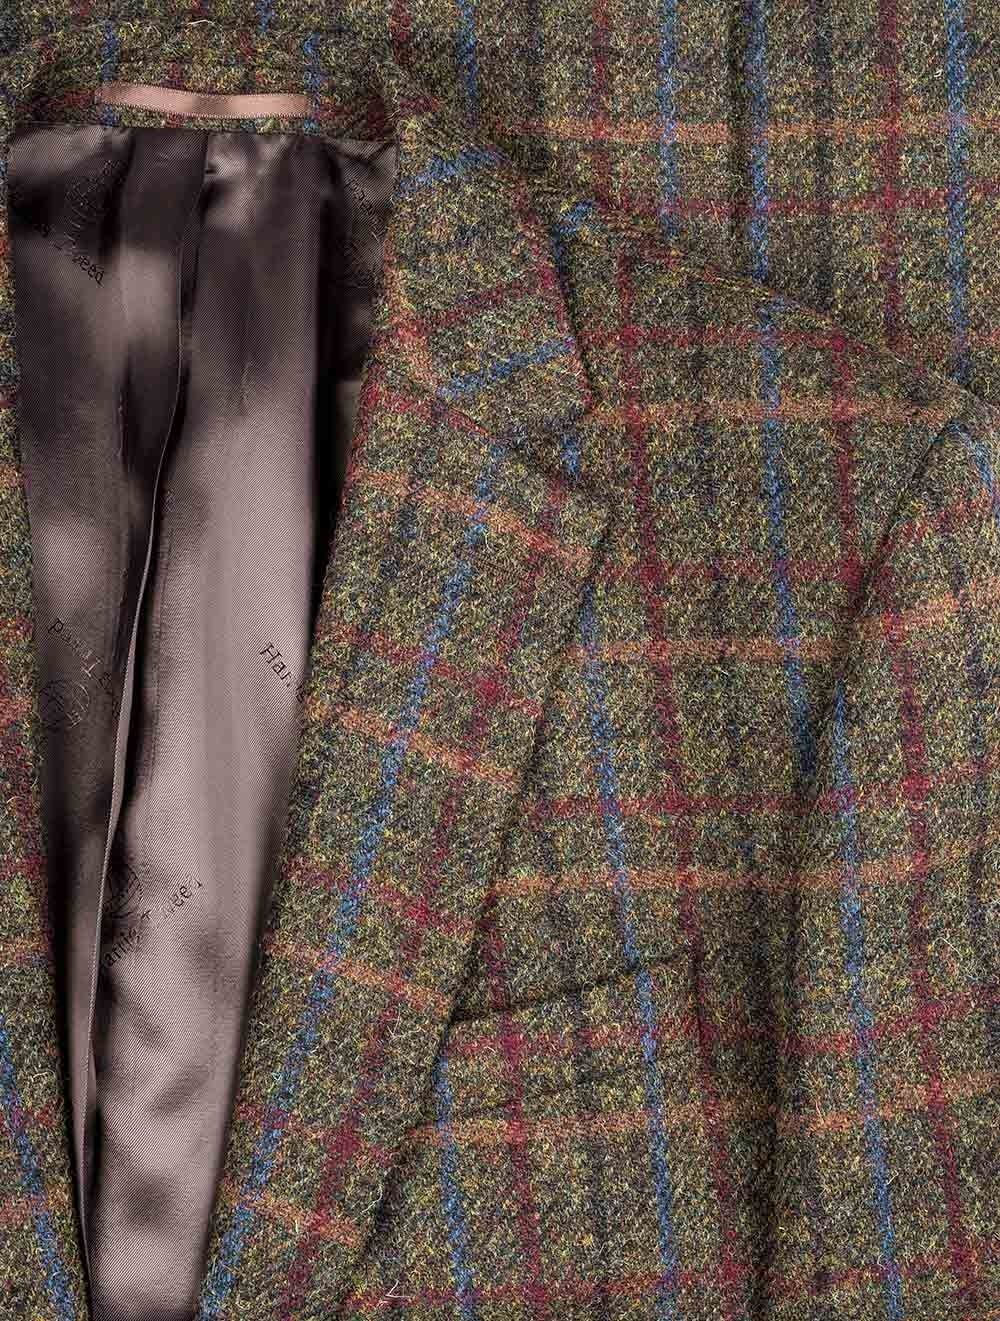 Harris Tweed Ein Echtes Stuck Natur Massanzuge Amp Masshemden